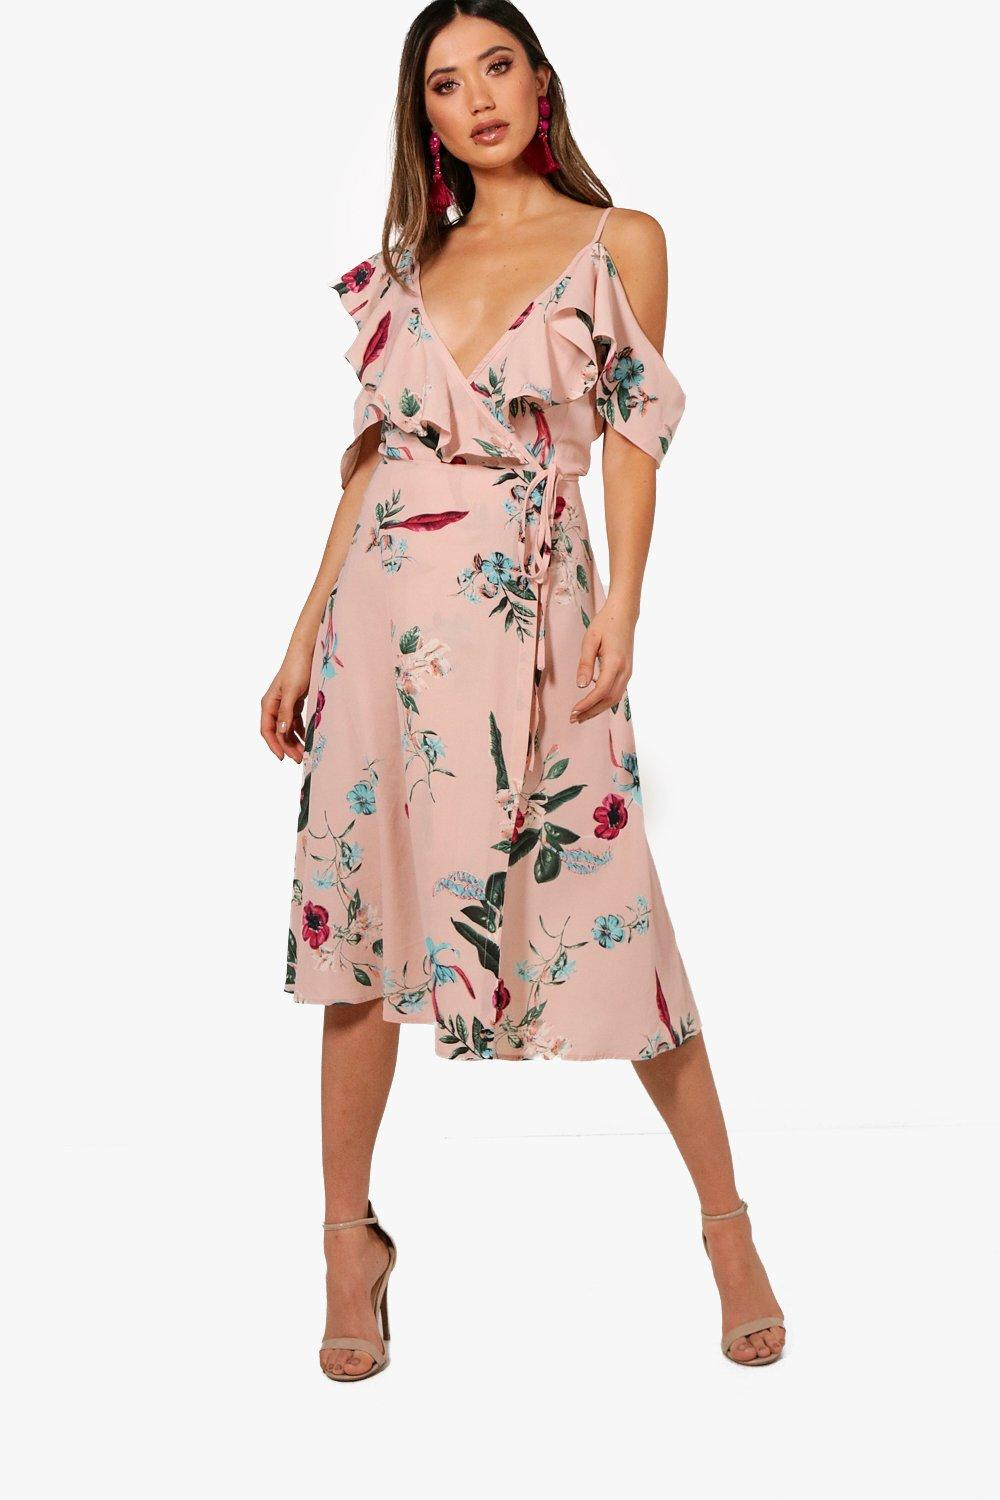 dbc426338ed Womens Nude Floral Ruffle Wrap Dress. Hover to zoom